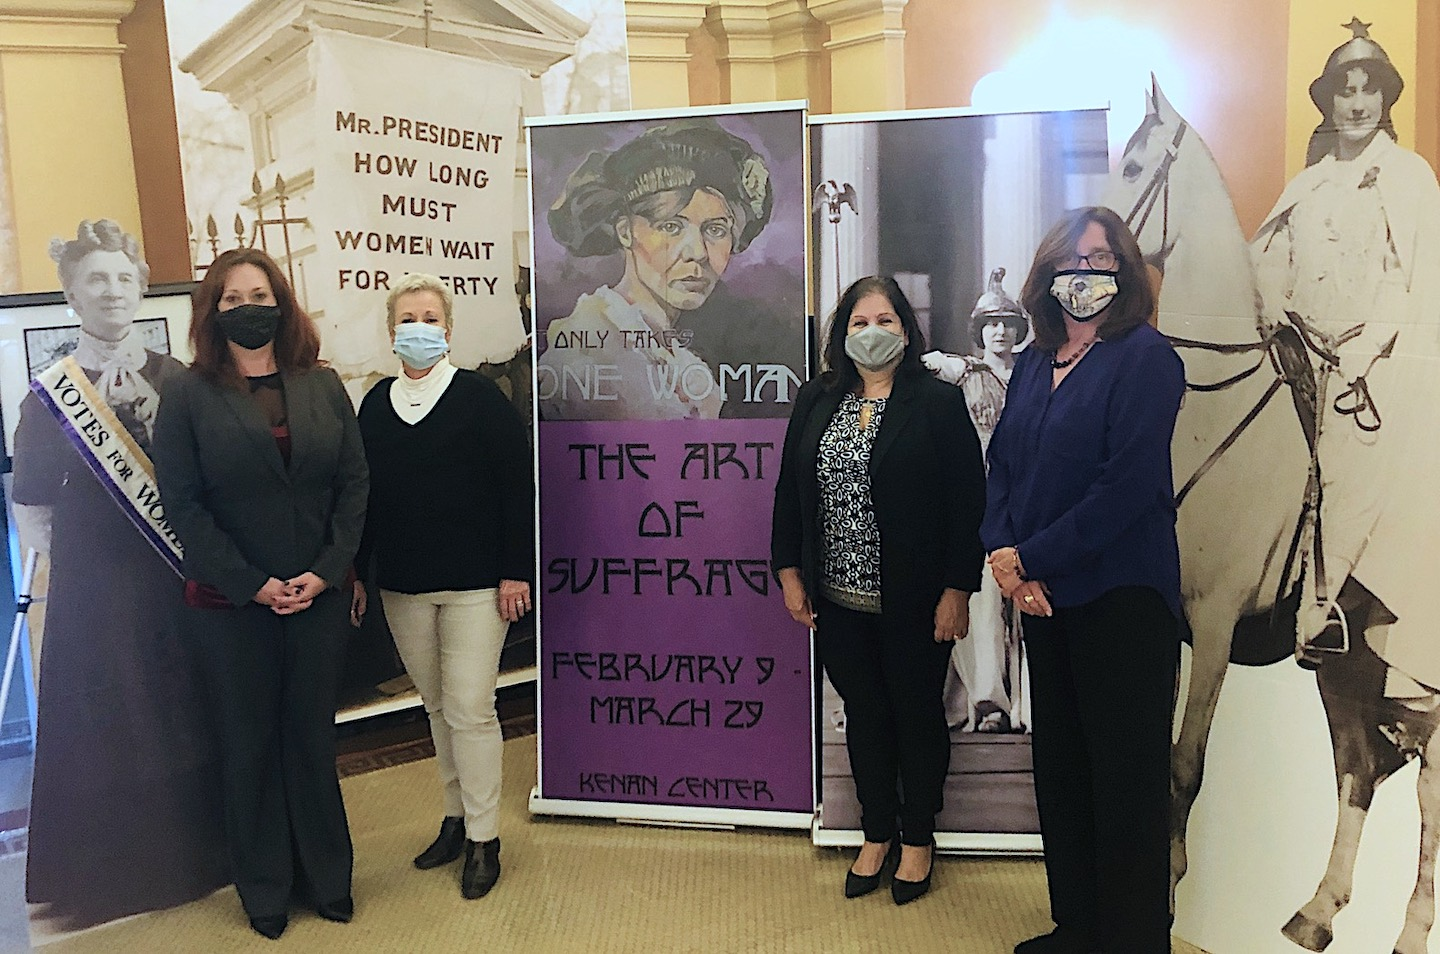 Pictured with the suffrage exhibit, from left: Niagara County Legislature Chairwoman Becky Wydysh, Legislator Irene Myers, Legislator Anita Mullane and Mary Brennan-Taylor.